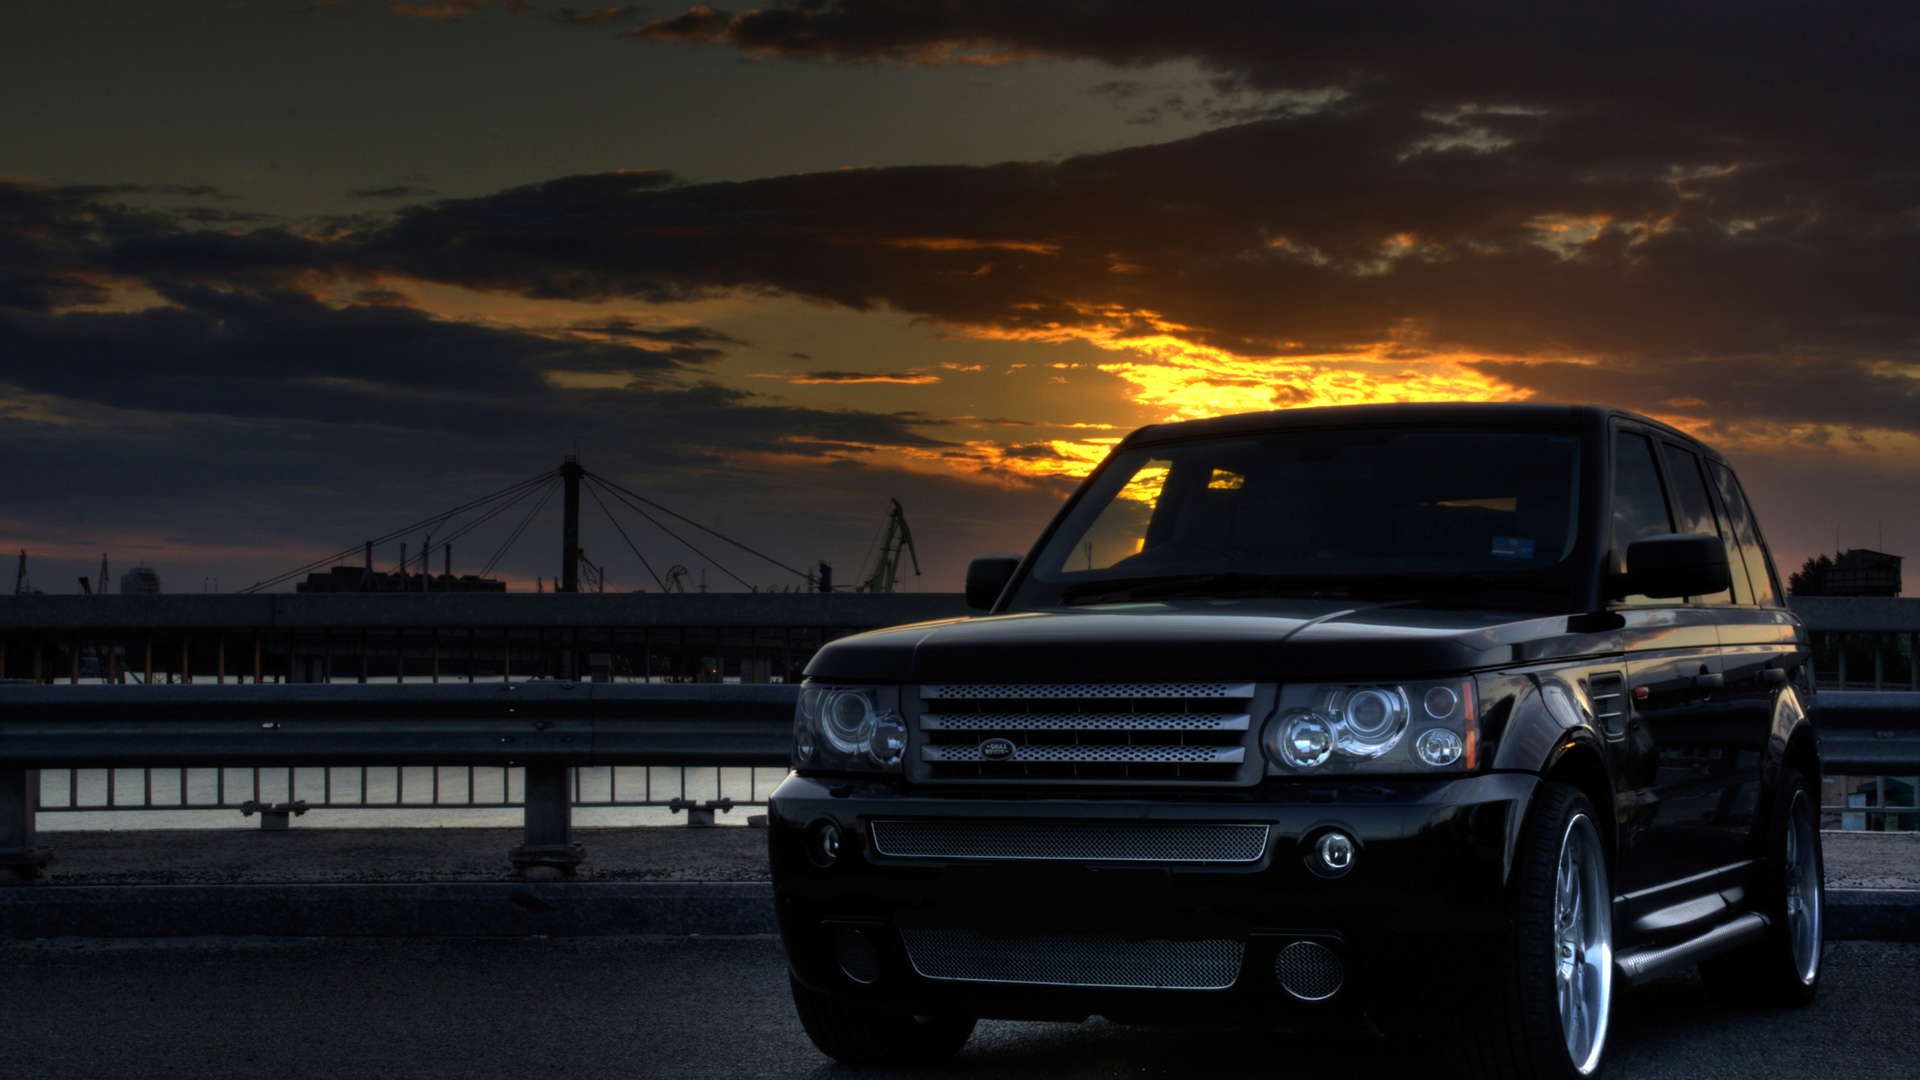 Range Rover Land Picture HD Wallpaper